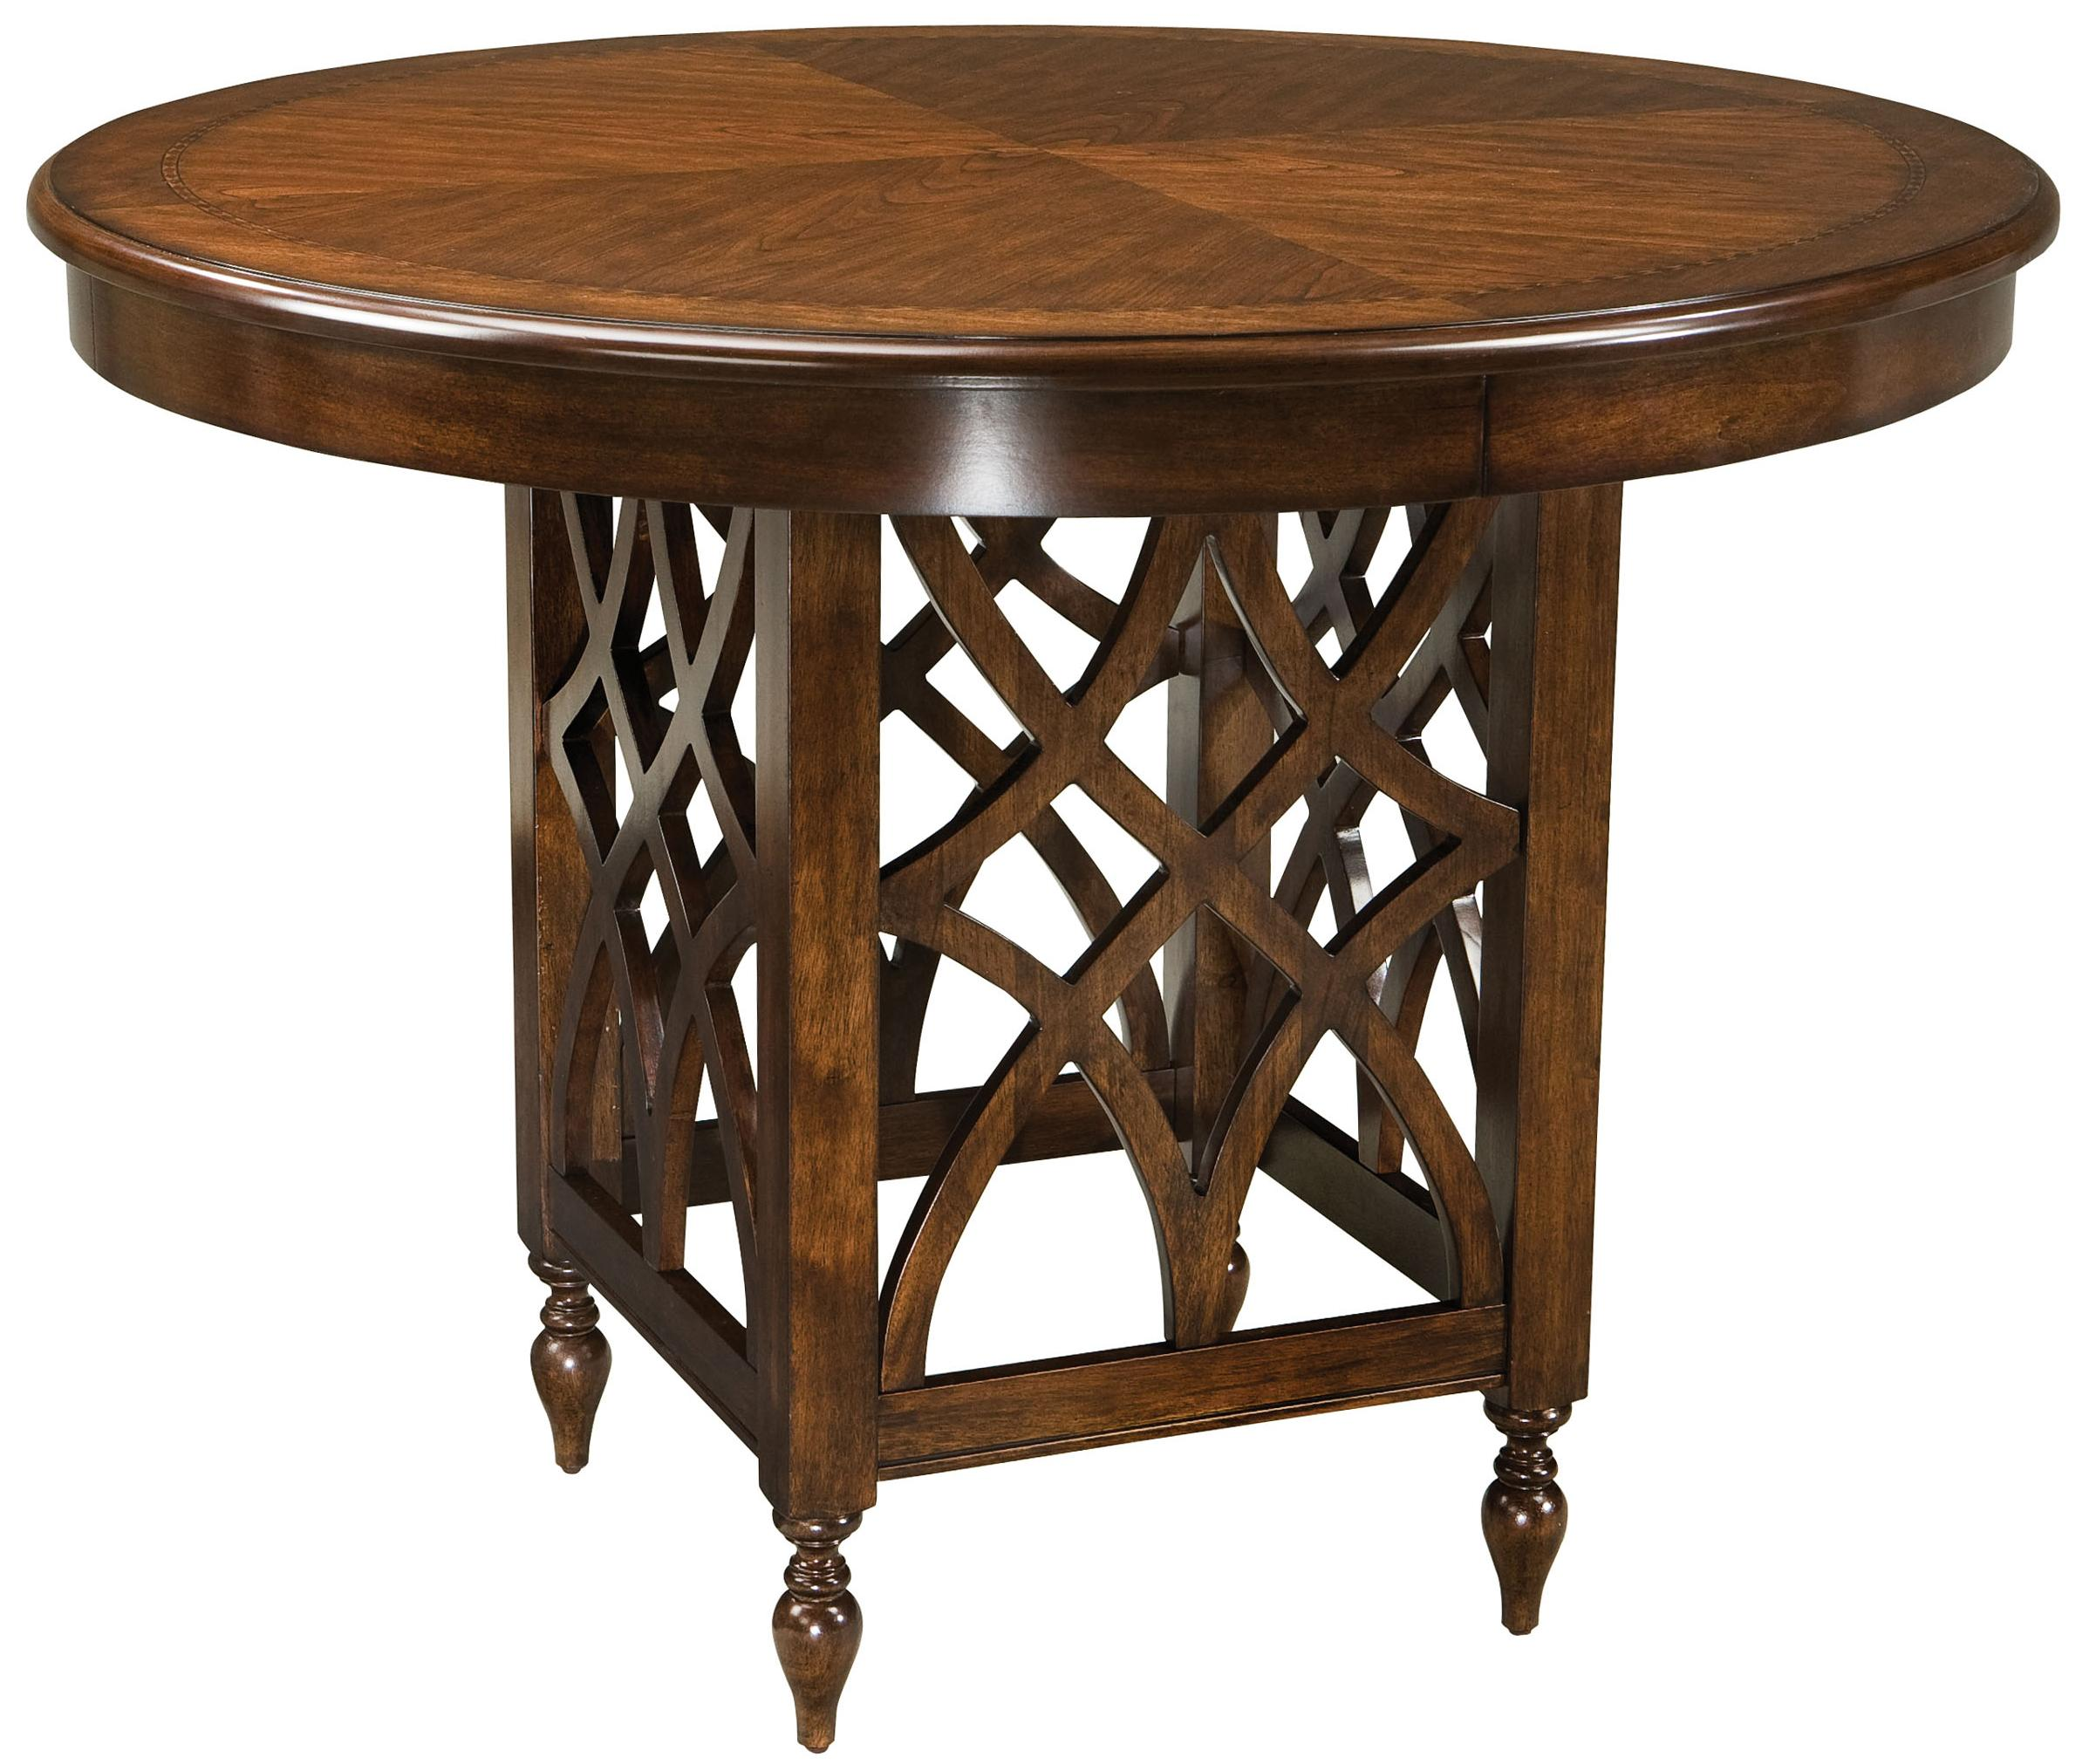 standard furniture woodmont round counter height table. Black Bedroom Furniture Sets. Home Design Ideas